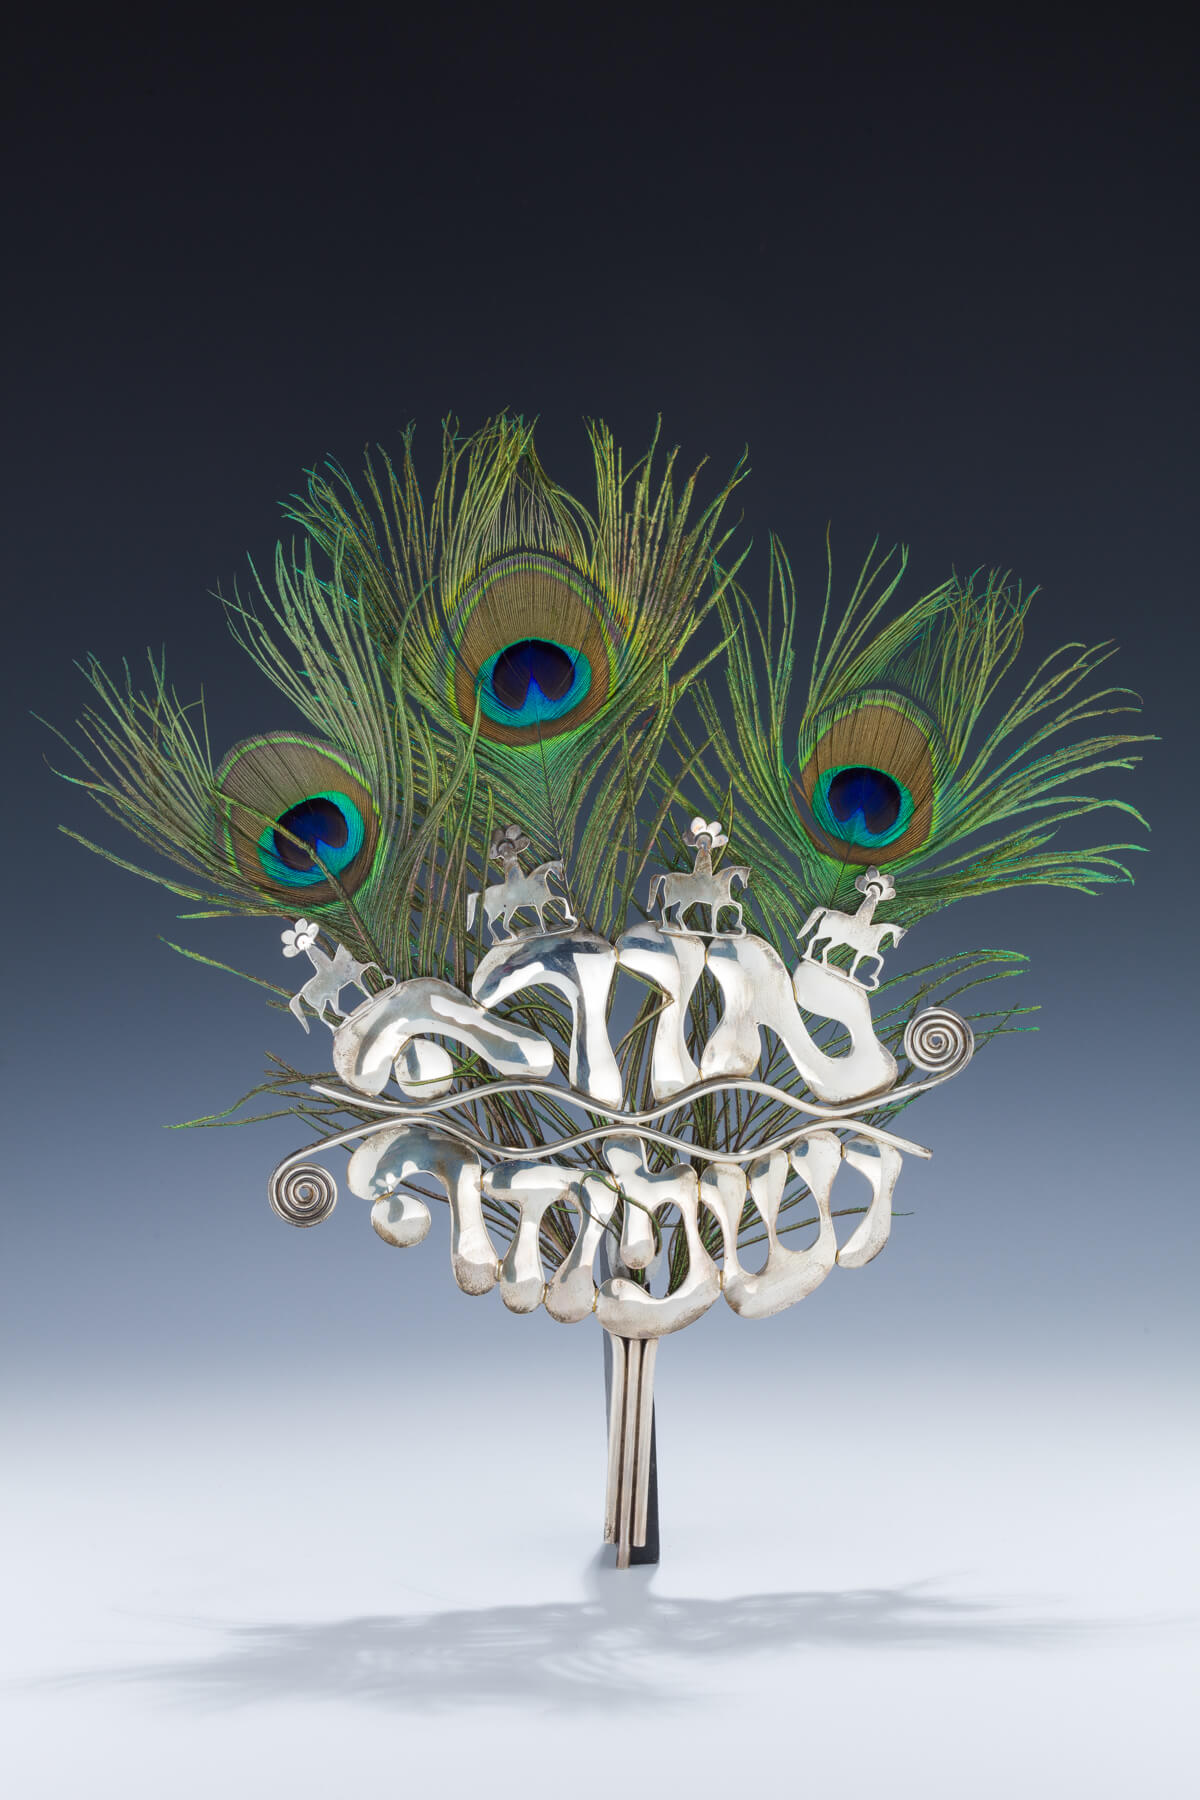 175. A Sterling Silver and Peacock Feather Purim Mask